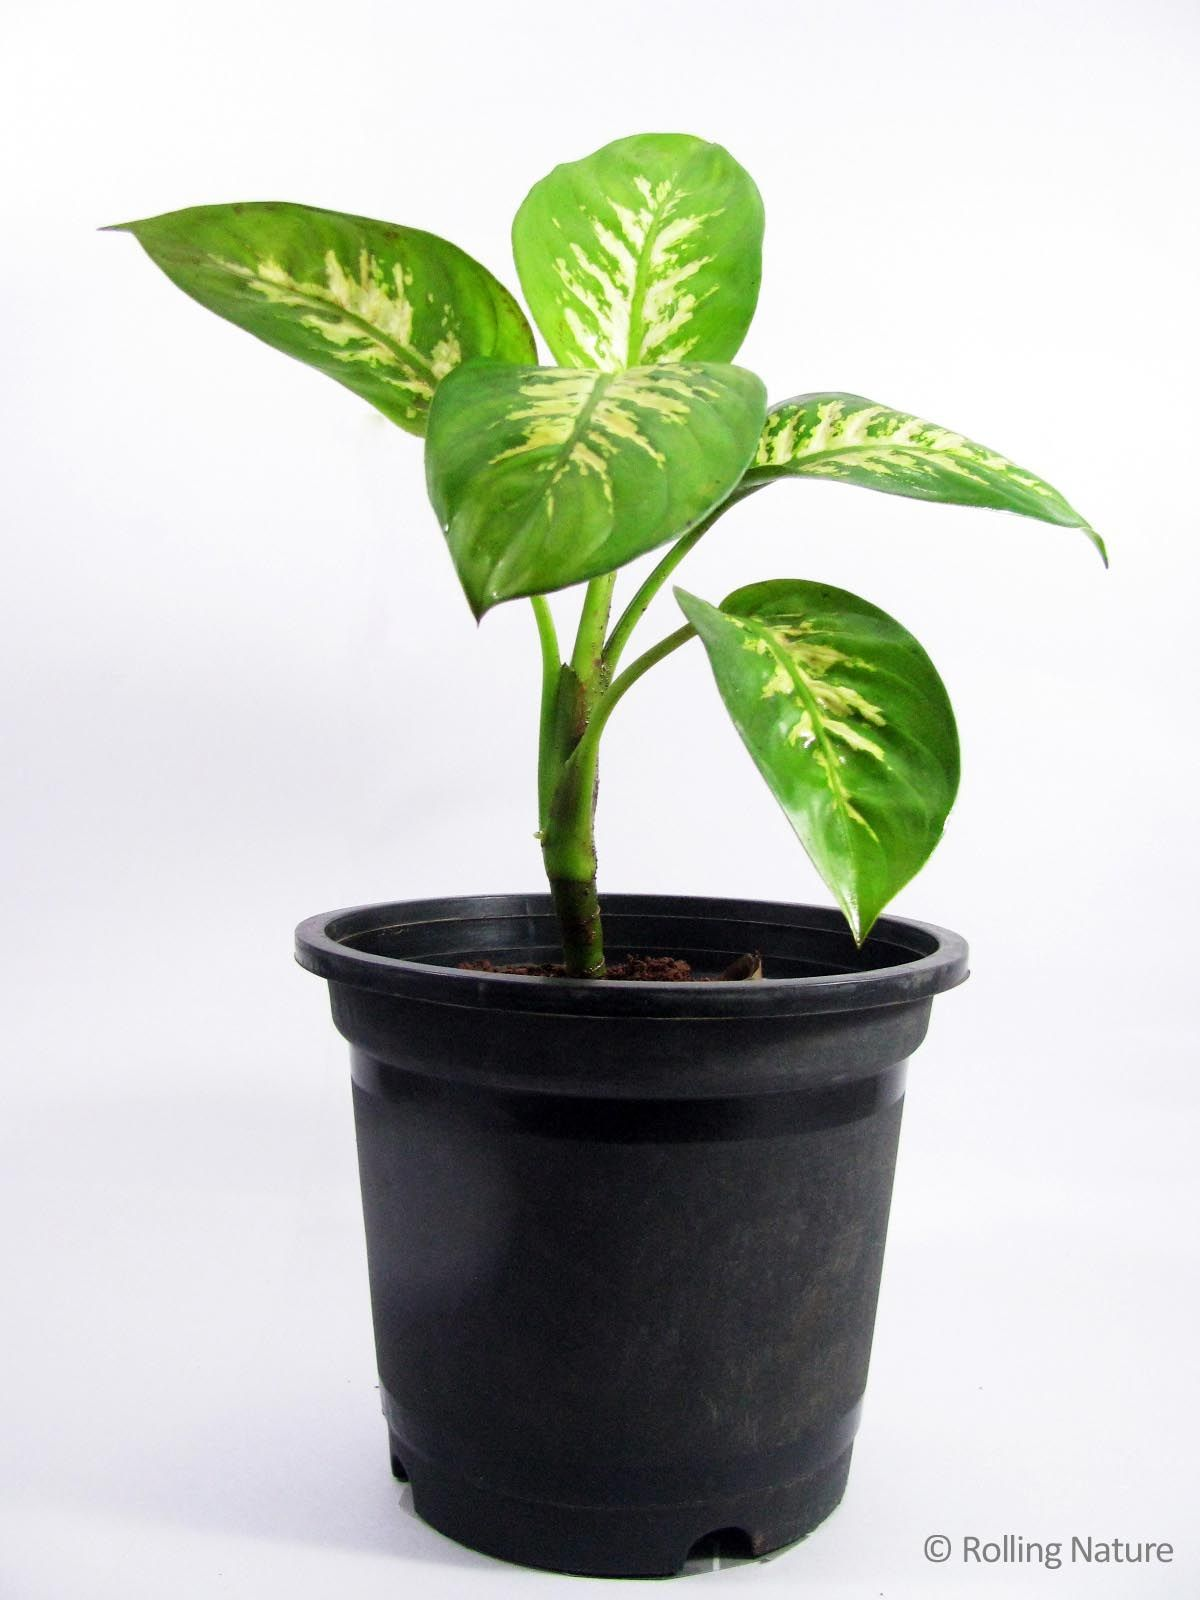 pretty dieffenbachia house plant. Dieffenbachia  A broad leaved foliage plant with thick succulent stems popular house